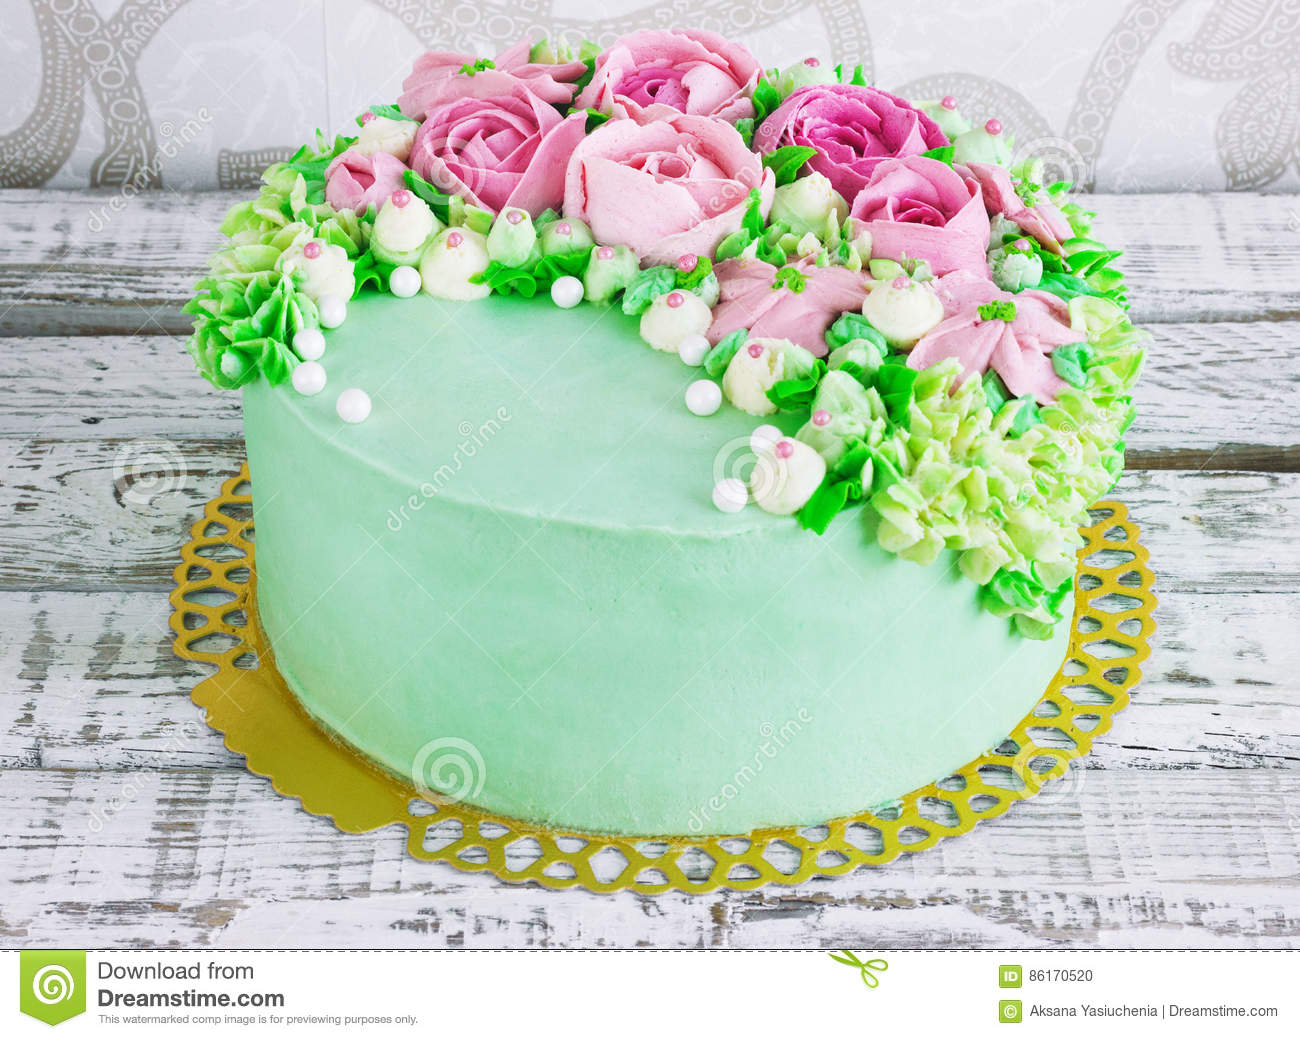 Birthday cake with flowers rose on white background stock photo birthday cake with flowers rose on white background izmirmasajfo Choice Image